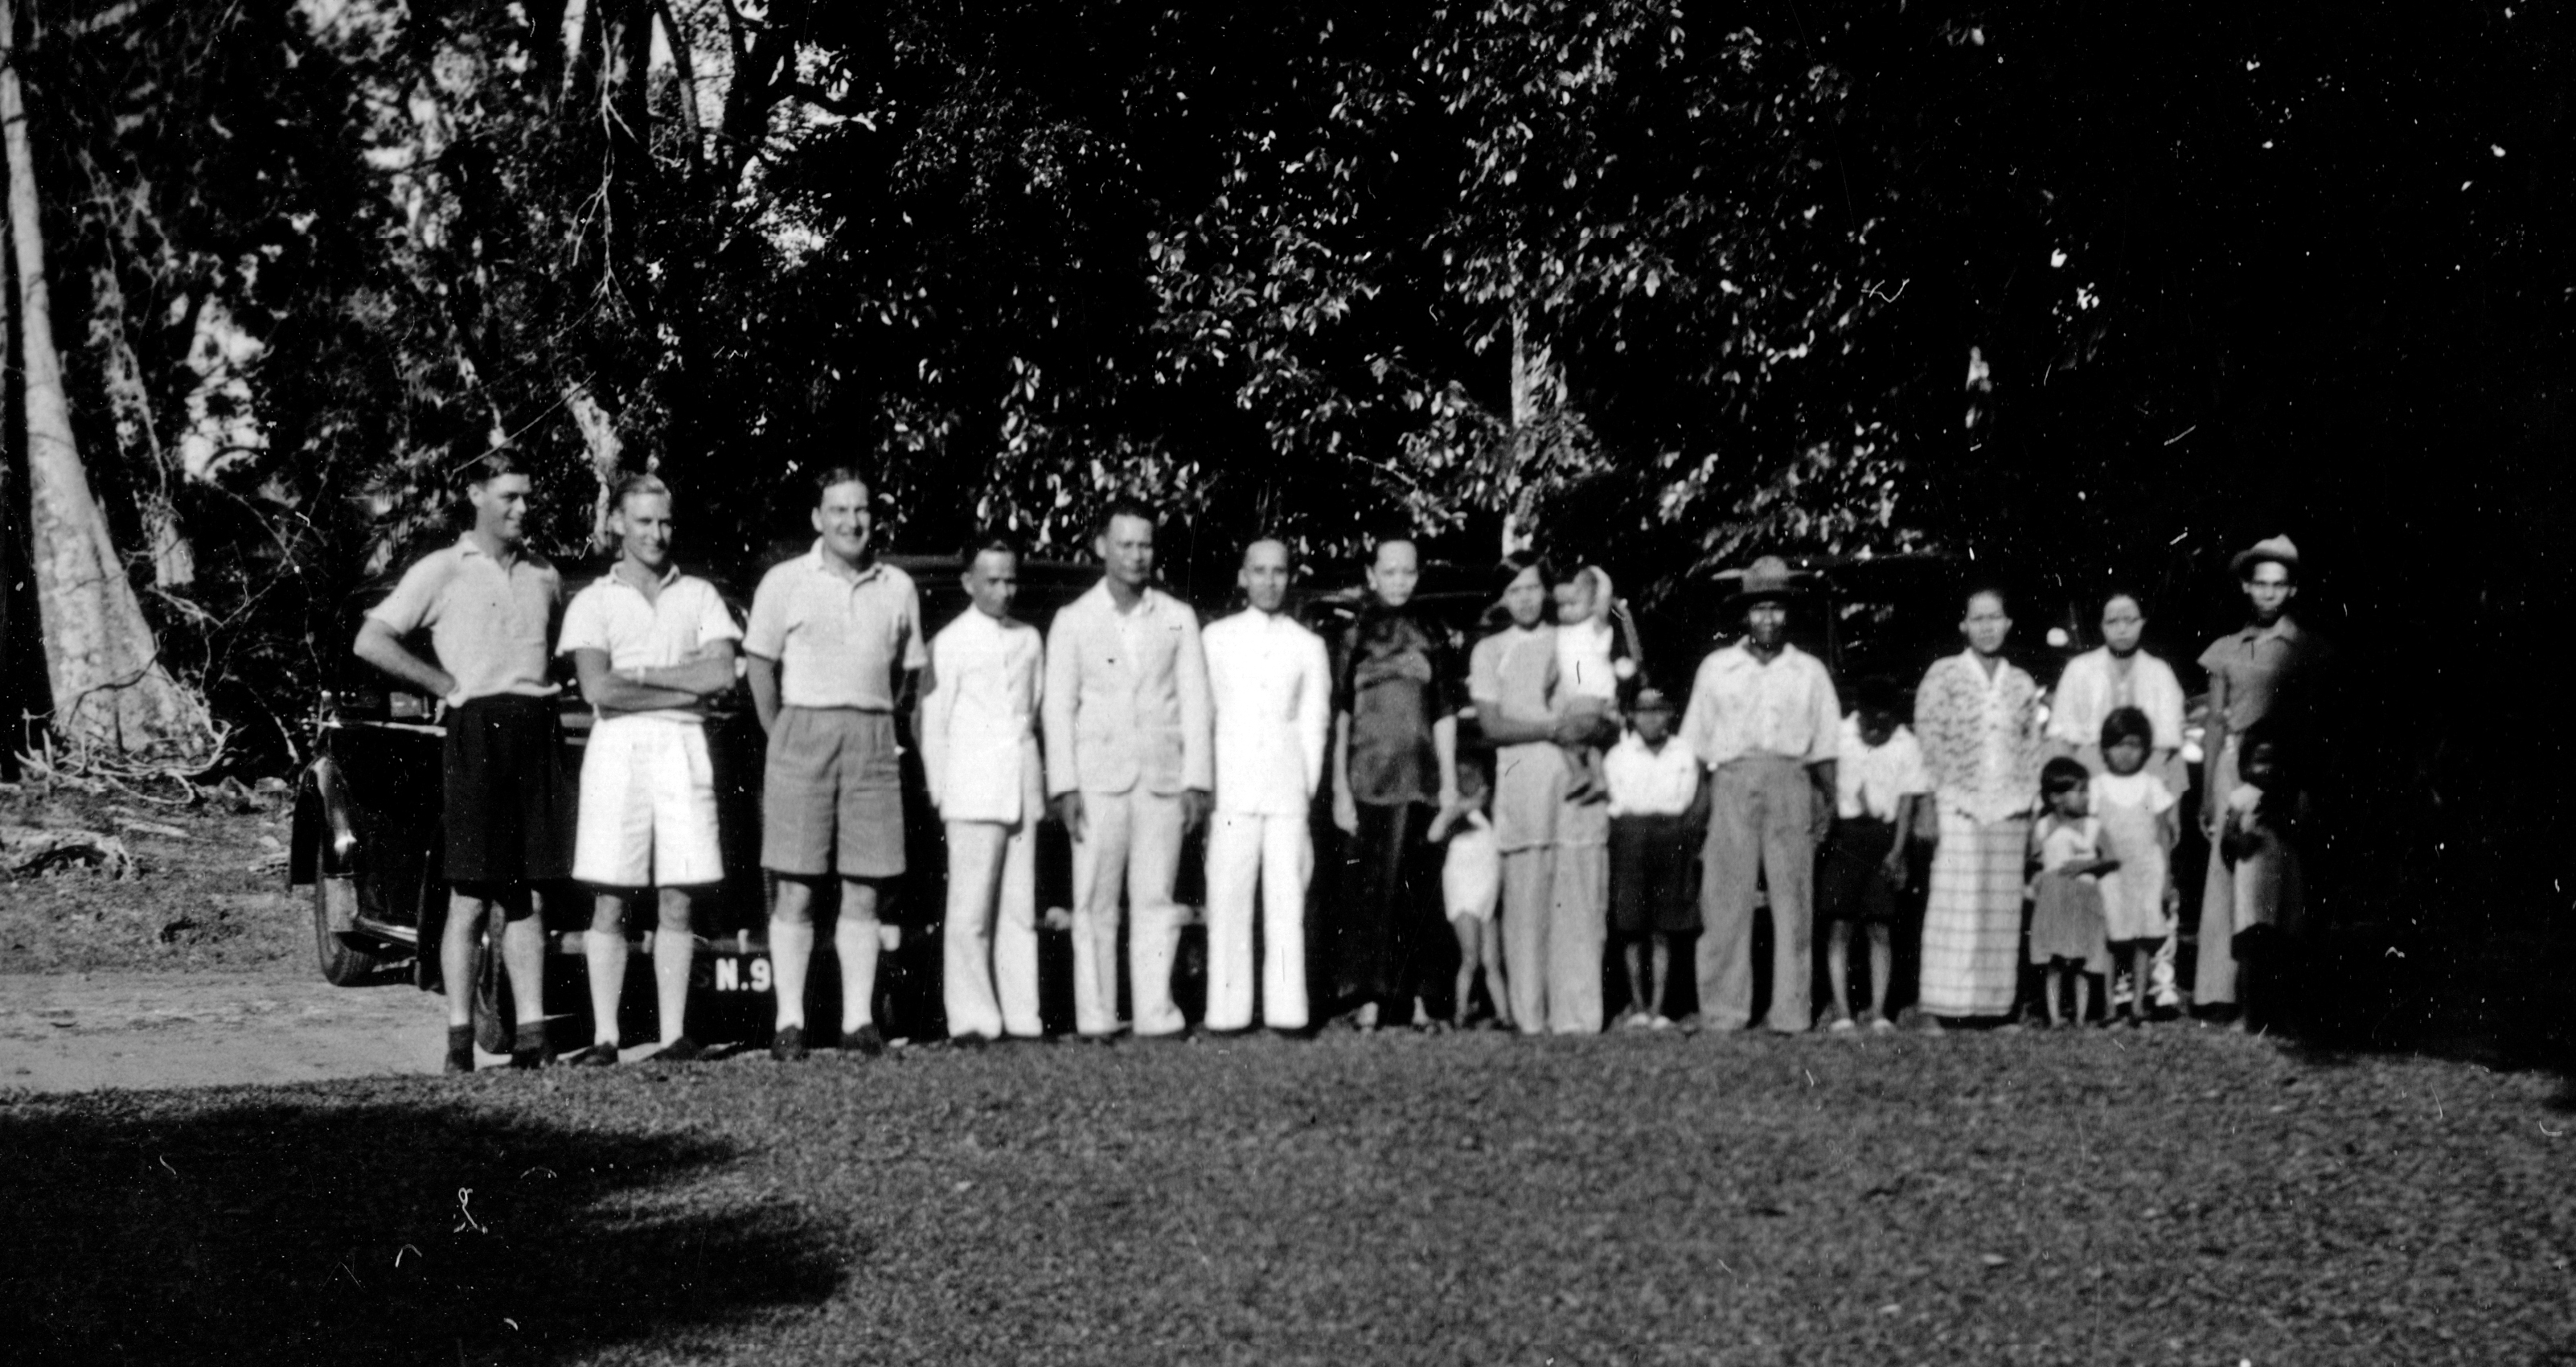 1939 The Boustead Mess in Singapore. Boustead European 'directors' to the left and mess staff to the right.